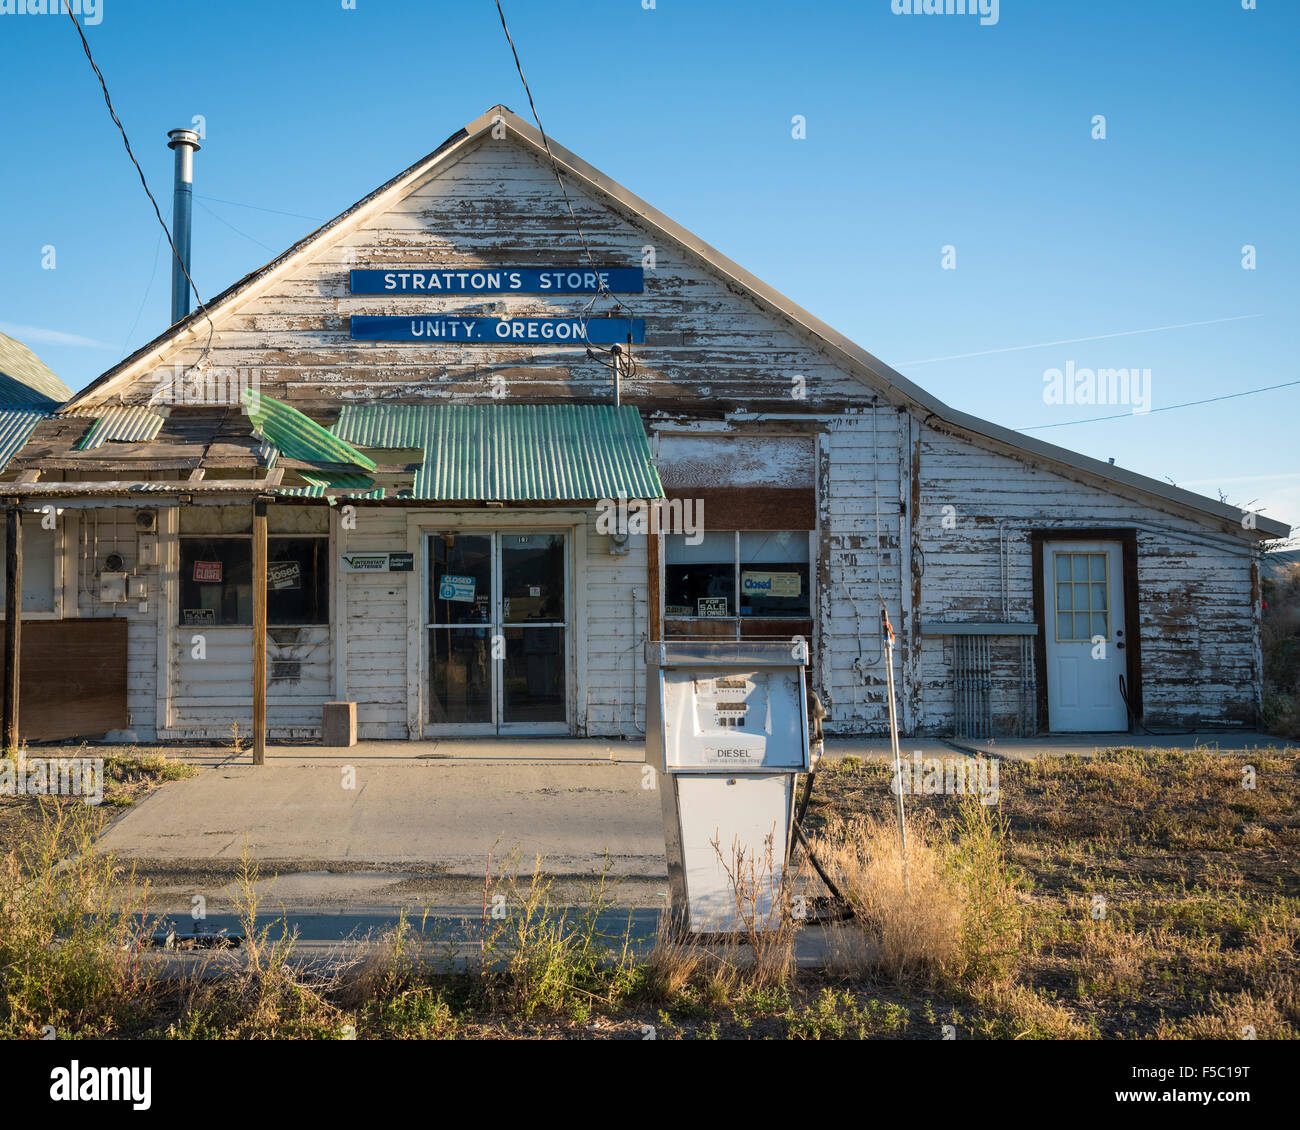 The former Stratton's Store in the town of Unity, eastern Oregon. - Stock Image